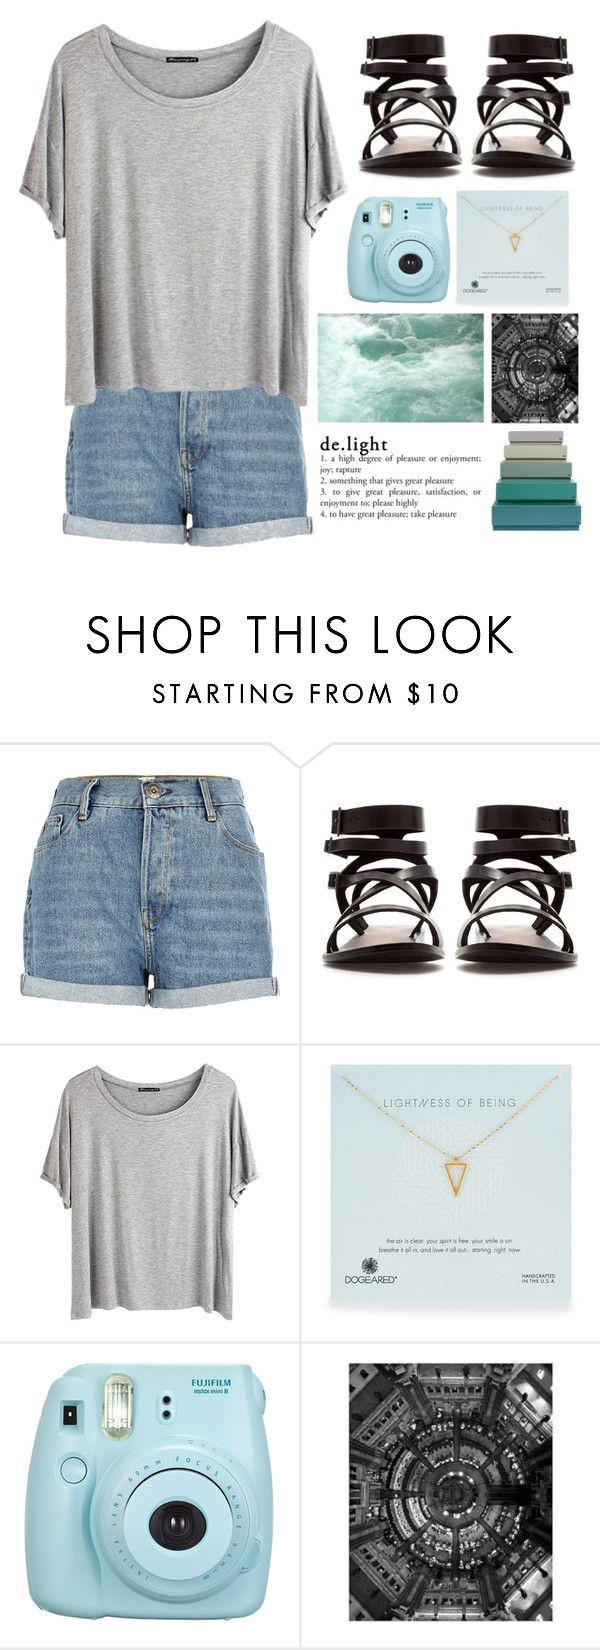 """""""oh it feels good to be loved.."""" by tweetie12 ❤ liked on Polyvore featuring River Island, Zara, Chicnova Fashion, Dogeared, Pottery Barn and HAY"""